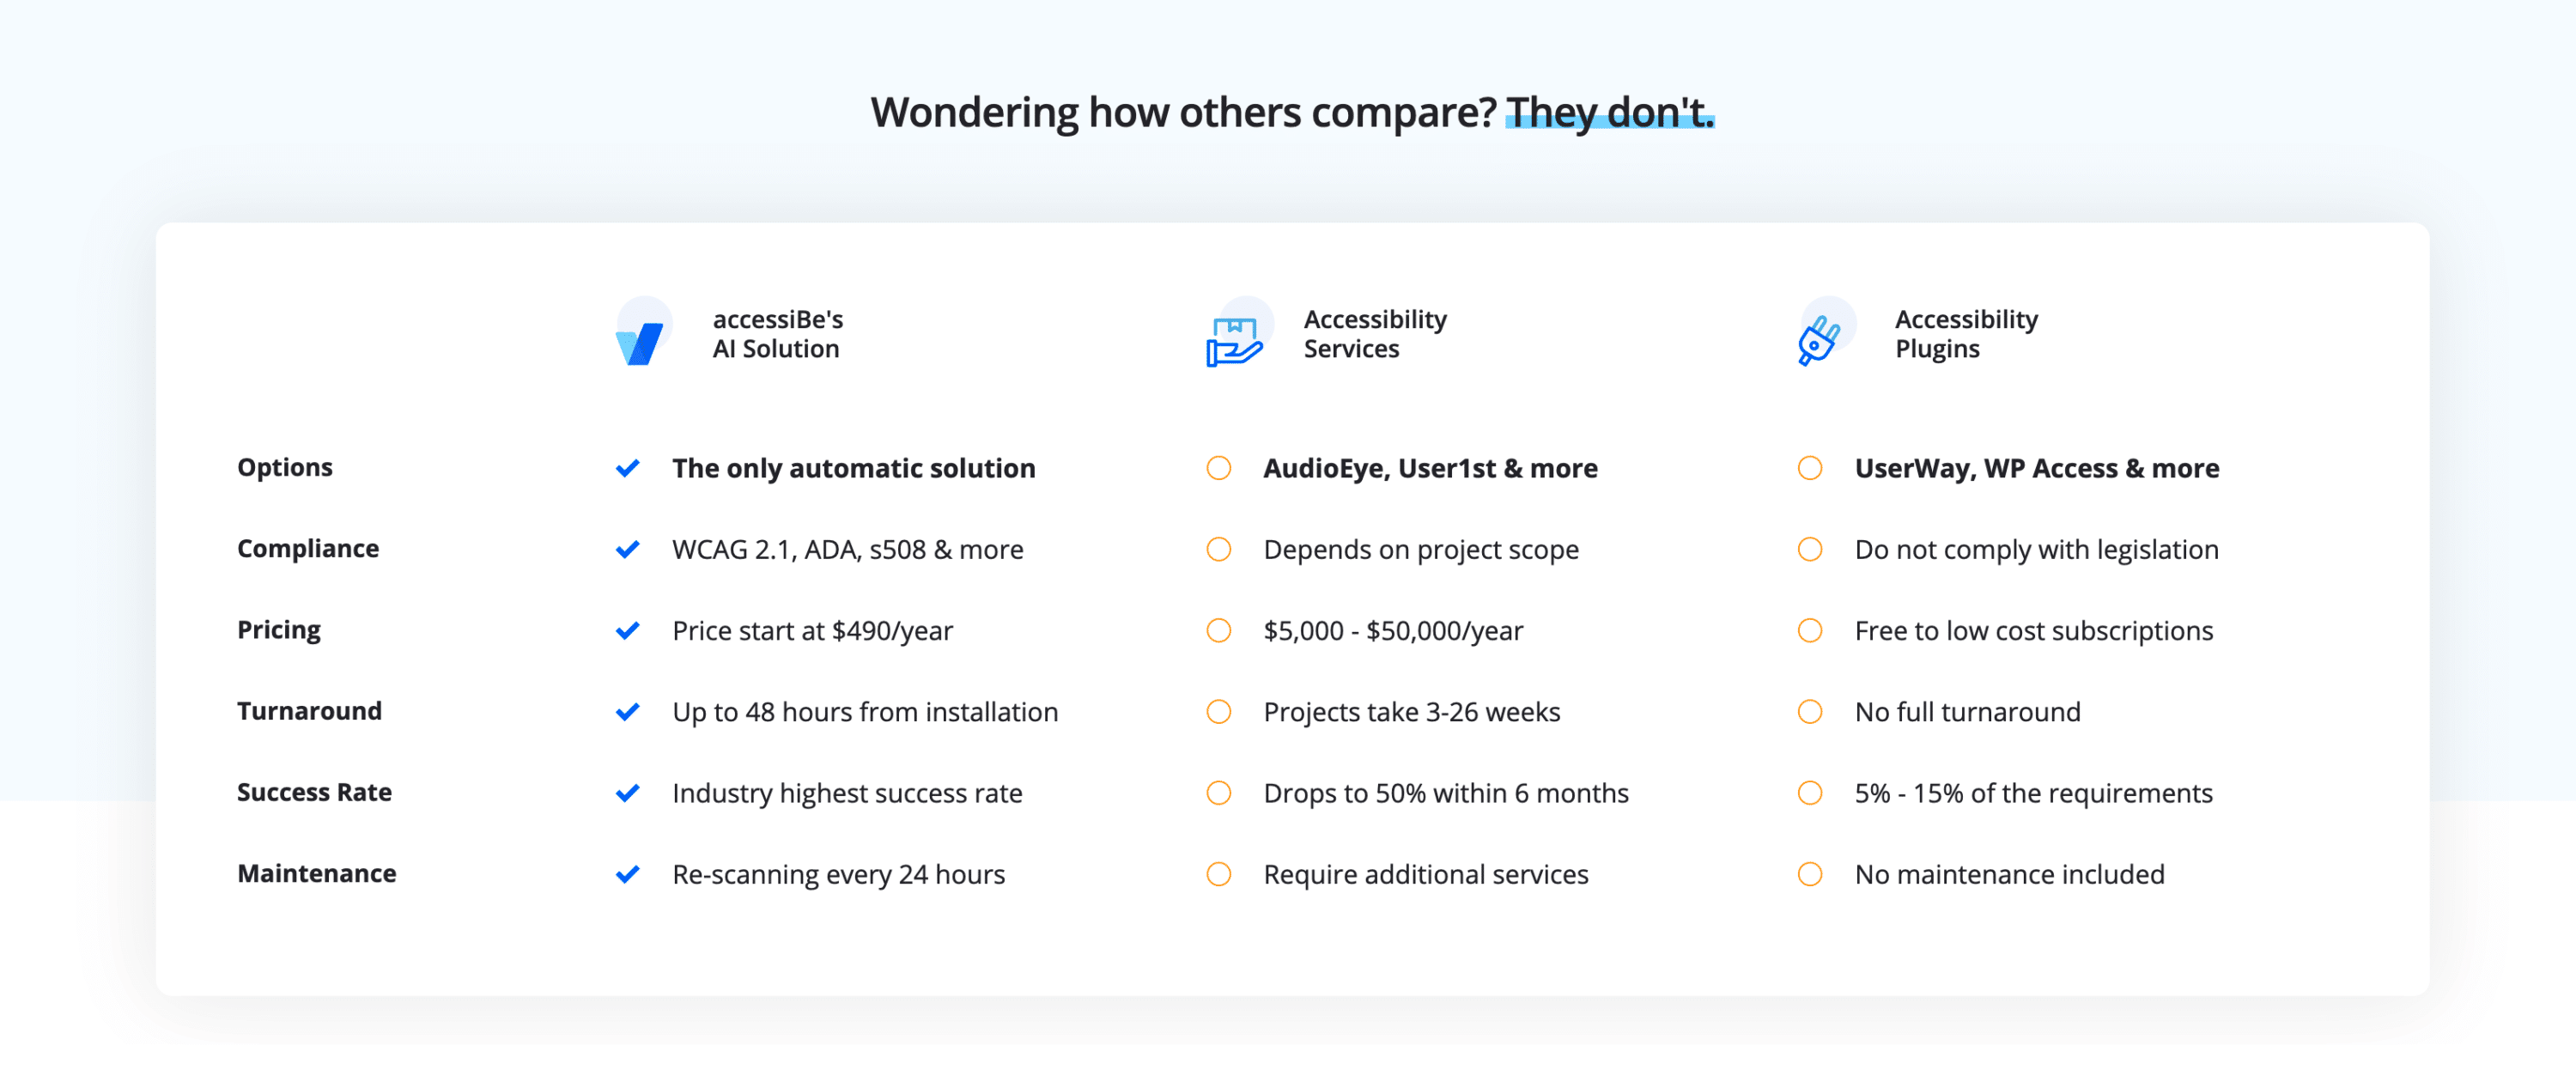 accessiBe-comparison-with-others